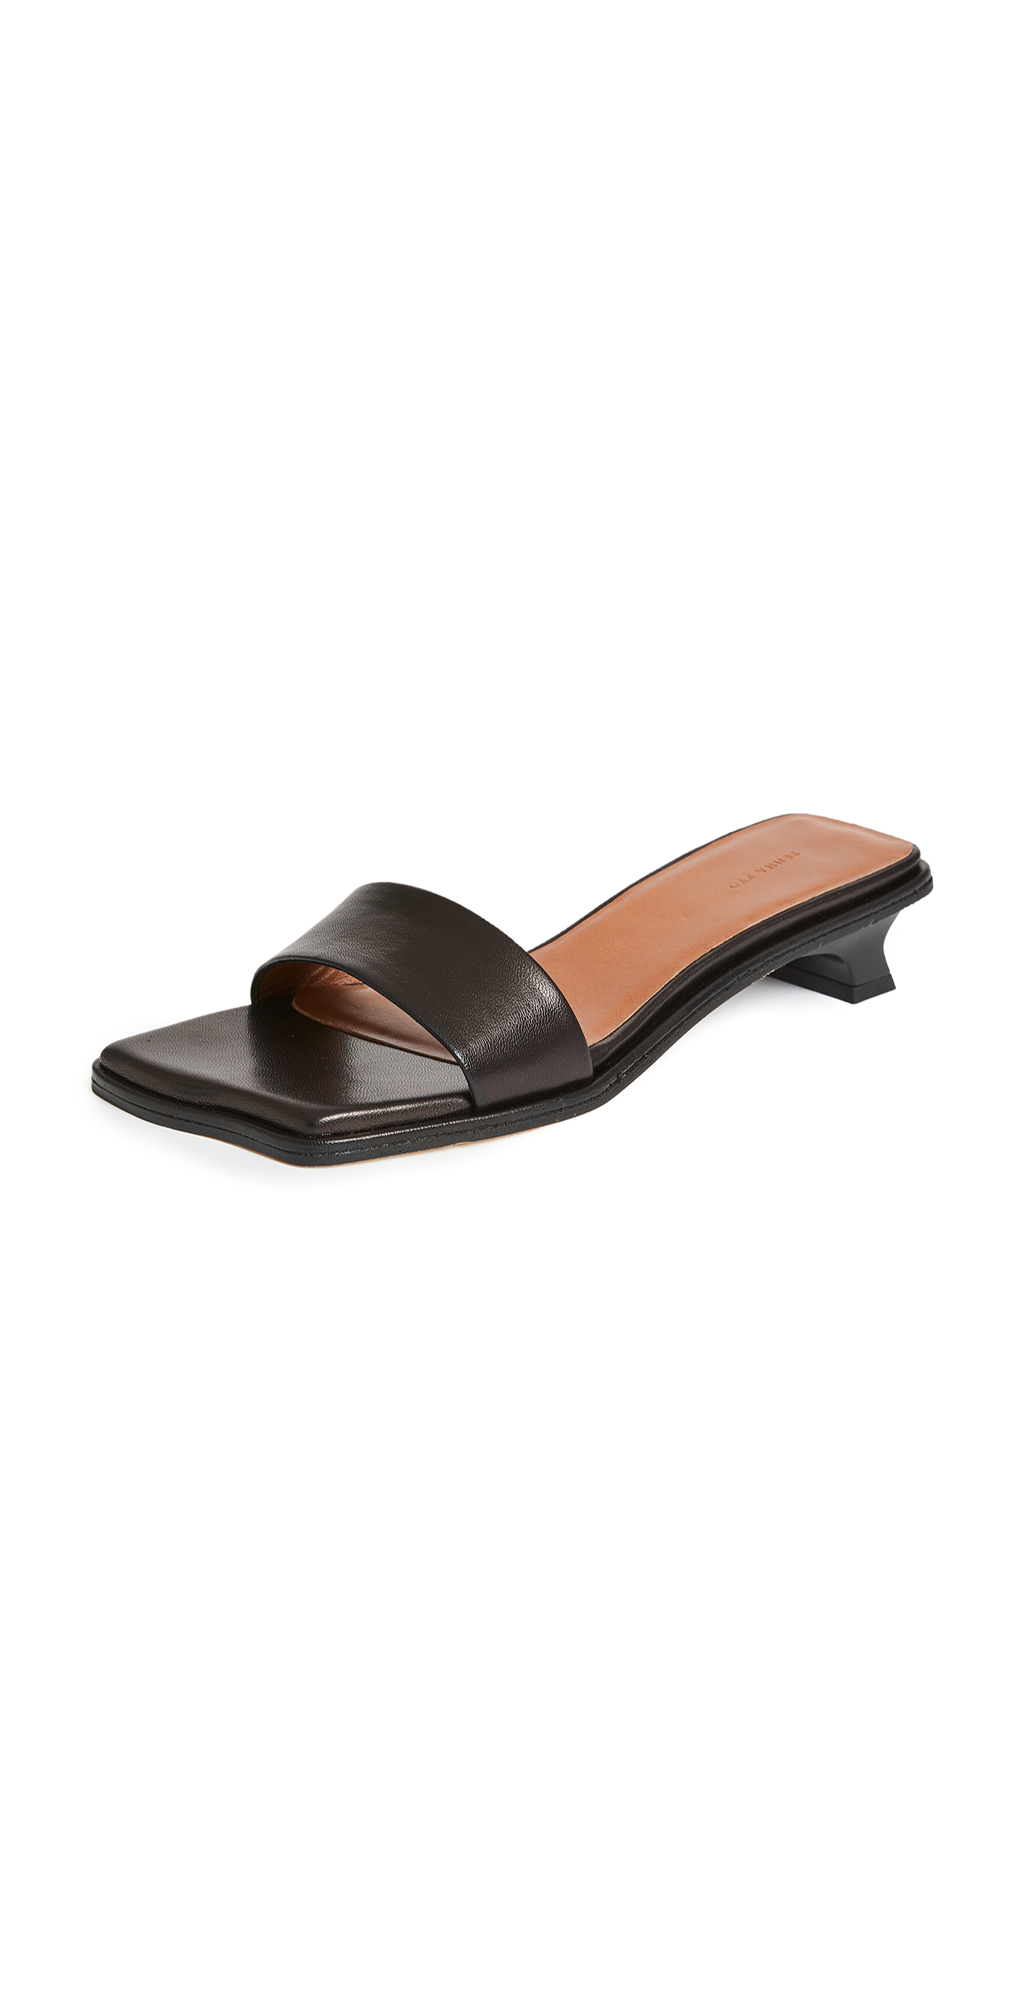 Rejina Pyo Isla Sandals 30mm